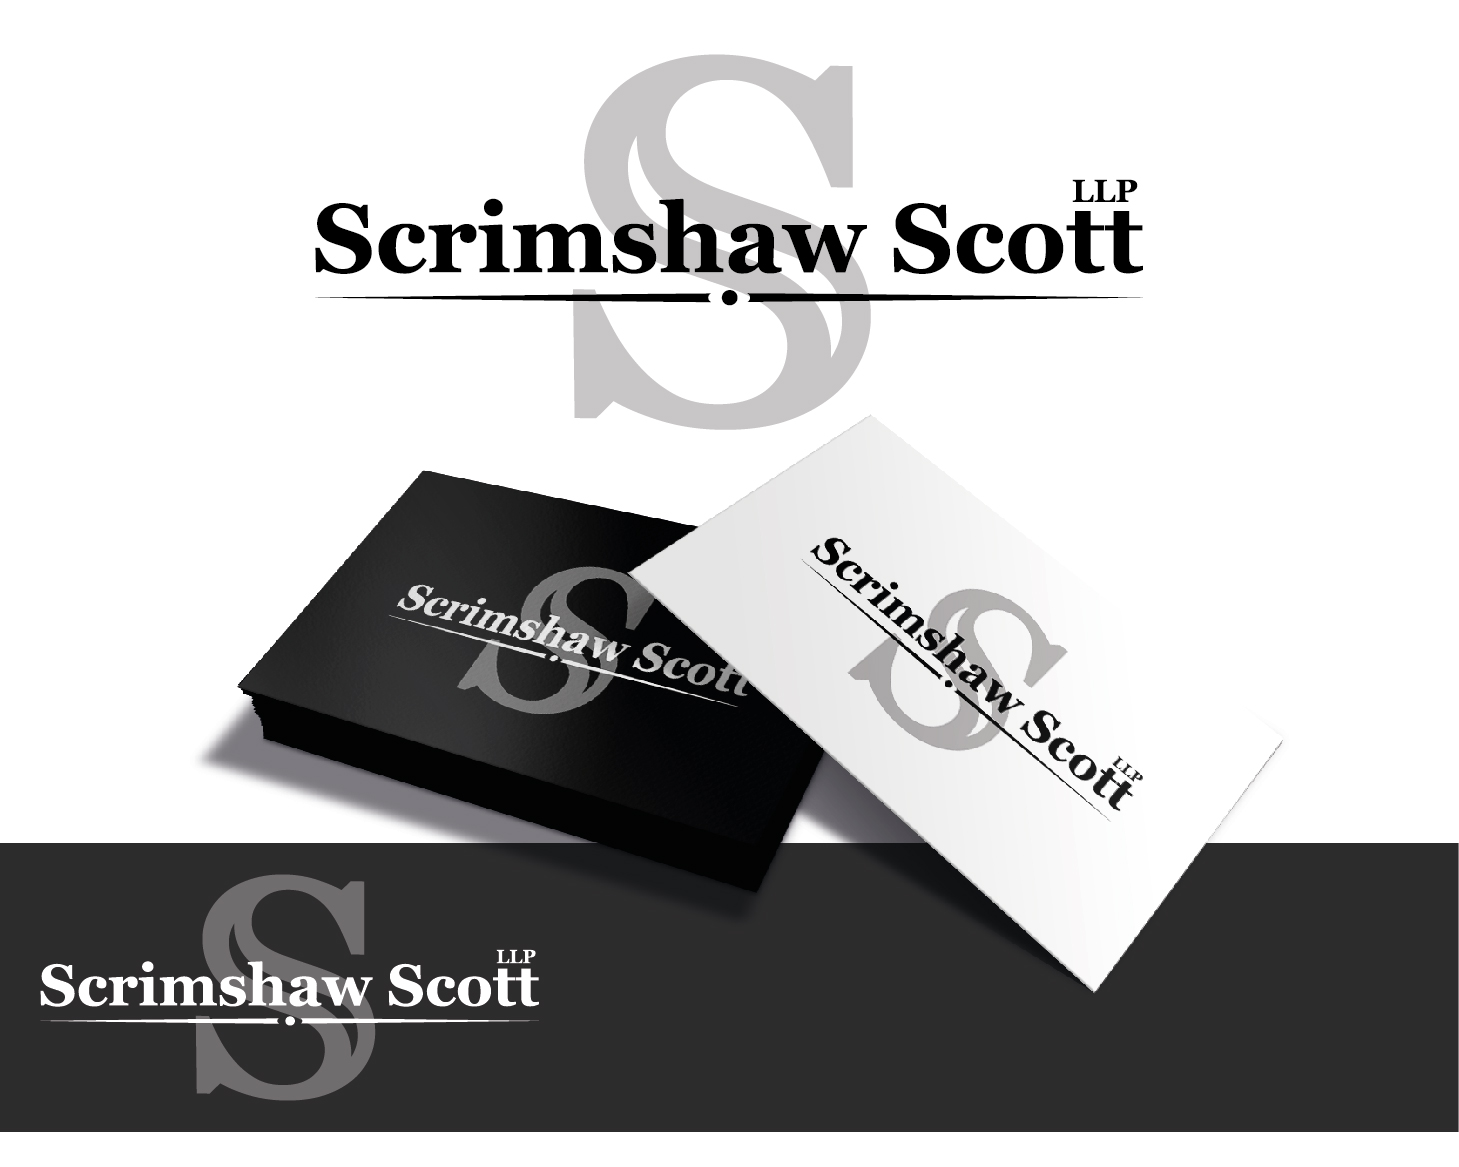 Logo Design by VENTSISLAV KOVACHEV - Entry No. 65 in the Logo Design Contest Creative Logo Design for Scrimshaw Scott LLP.